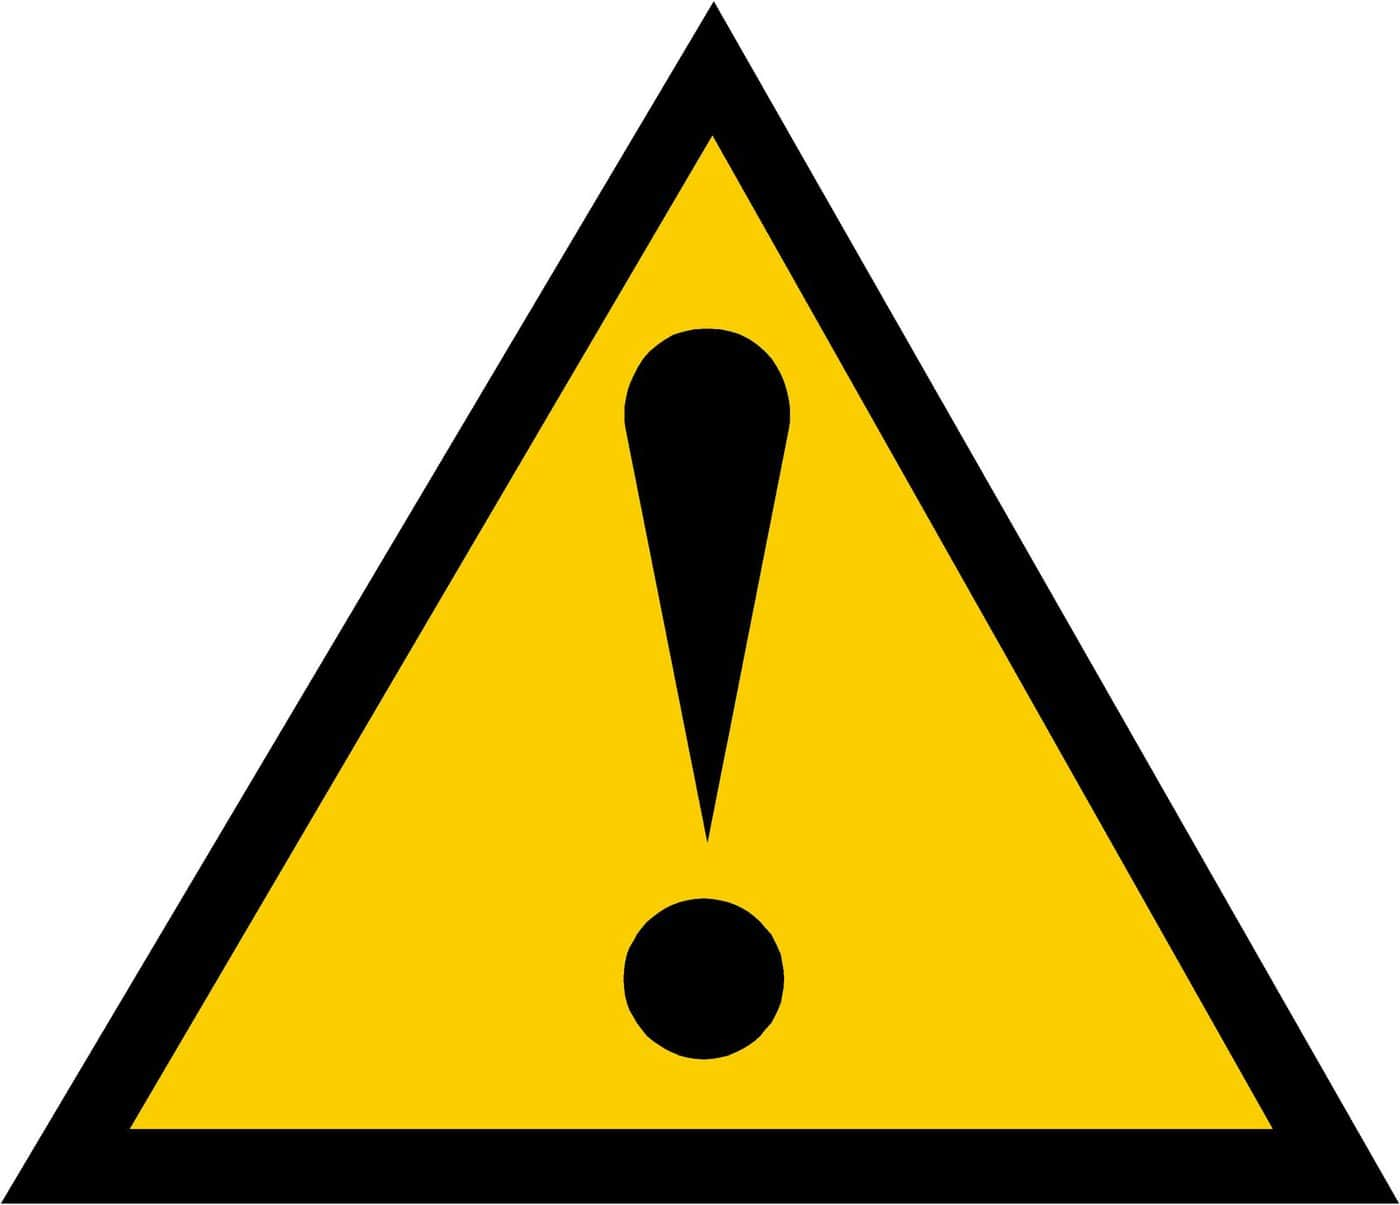 Are Proposition 65 Warnings Affecting Consumer Perceptions Of Product Safety?